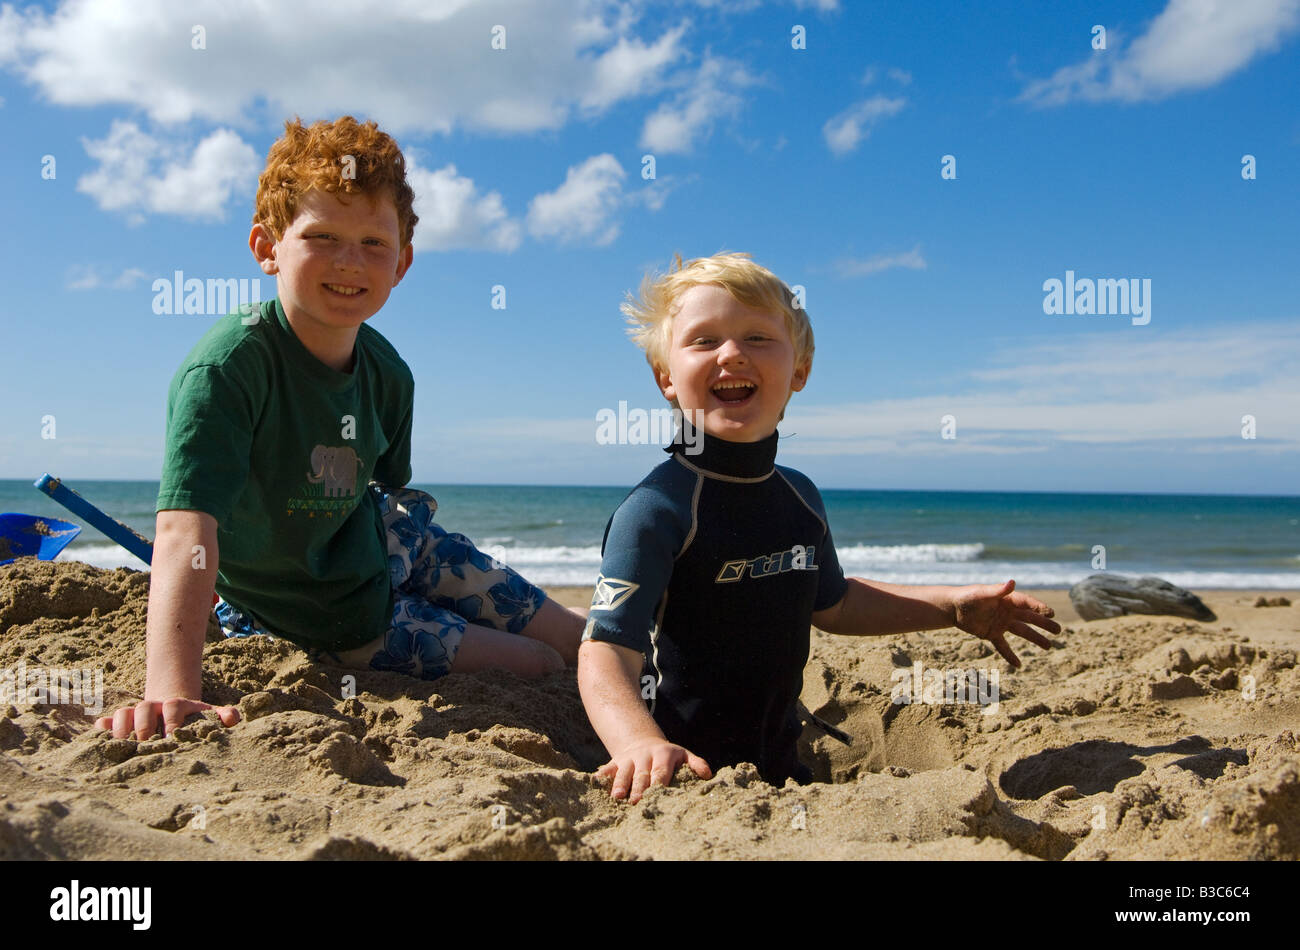 UK, Wales, Ceredigion. Two young boys enjoy playing on Penbryn Beach in Cardiganshire (MR). - Stock Image